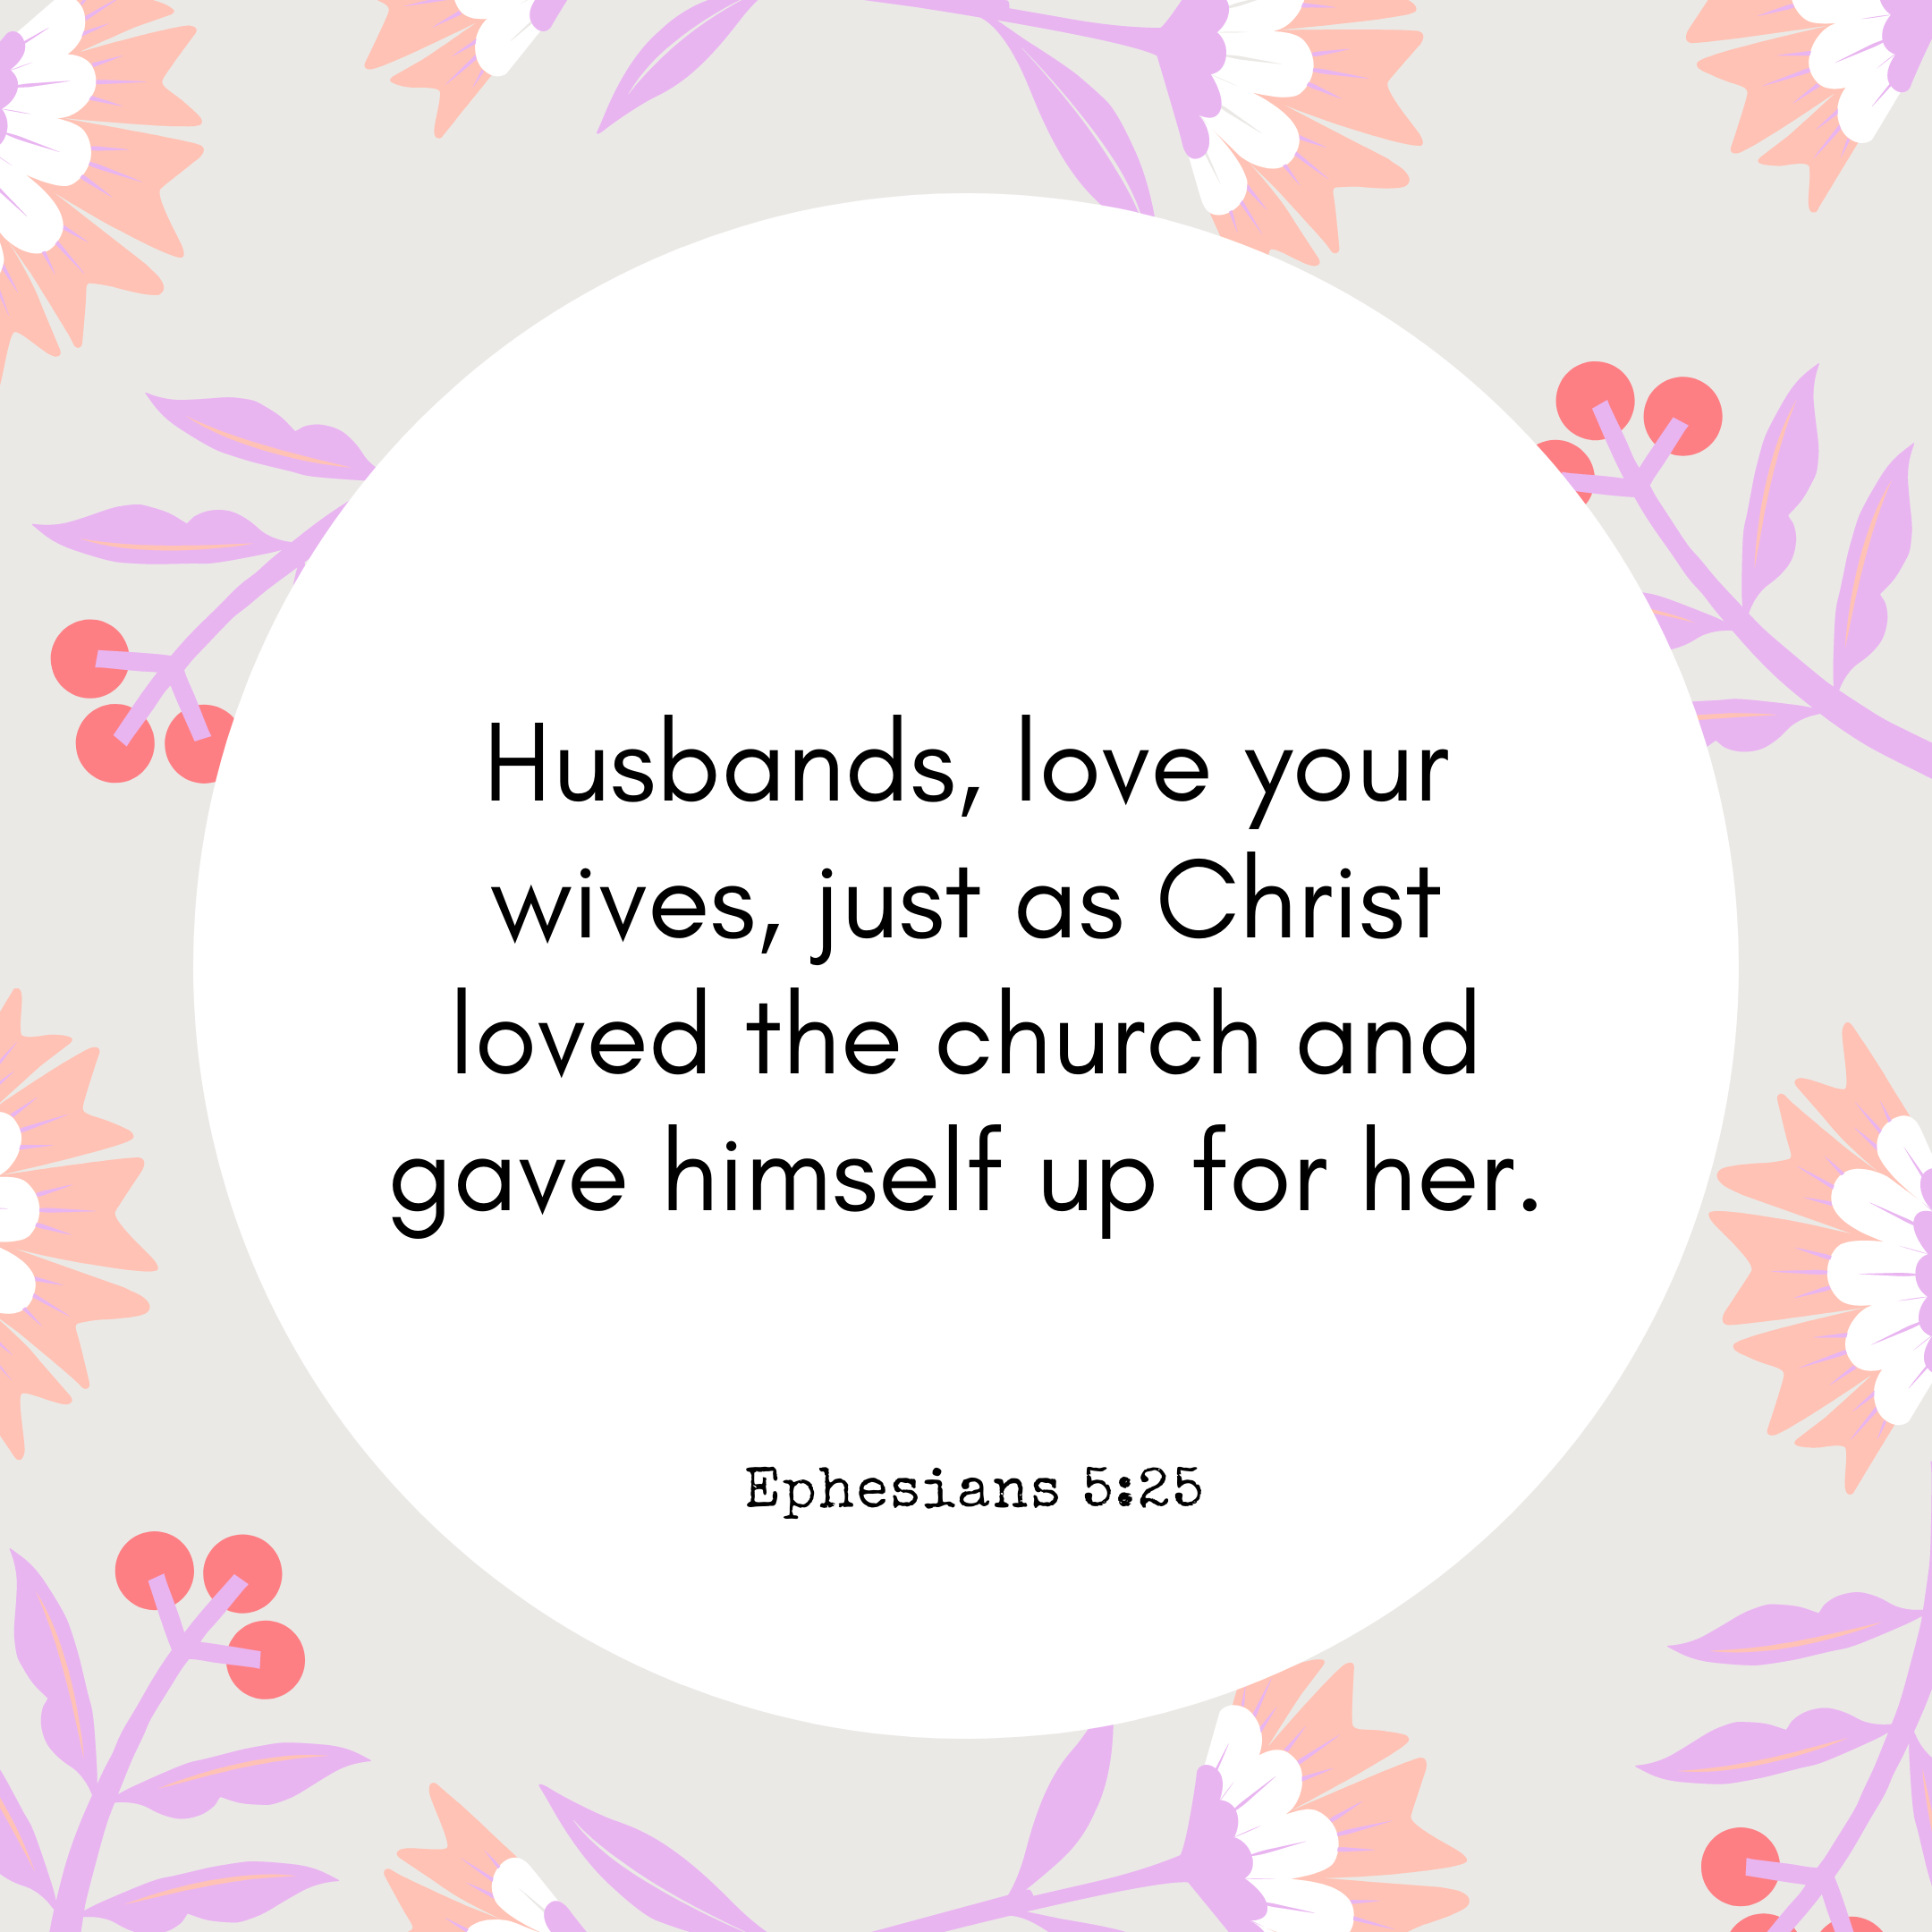 Ephesians 5:25 Husbands, love your wives, just as Christ loved the church and gave himself up for her.